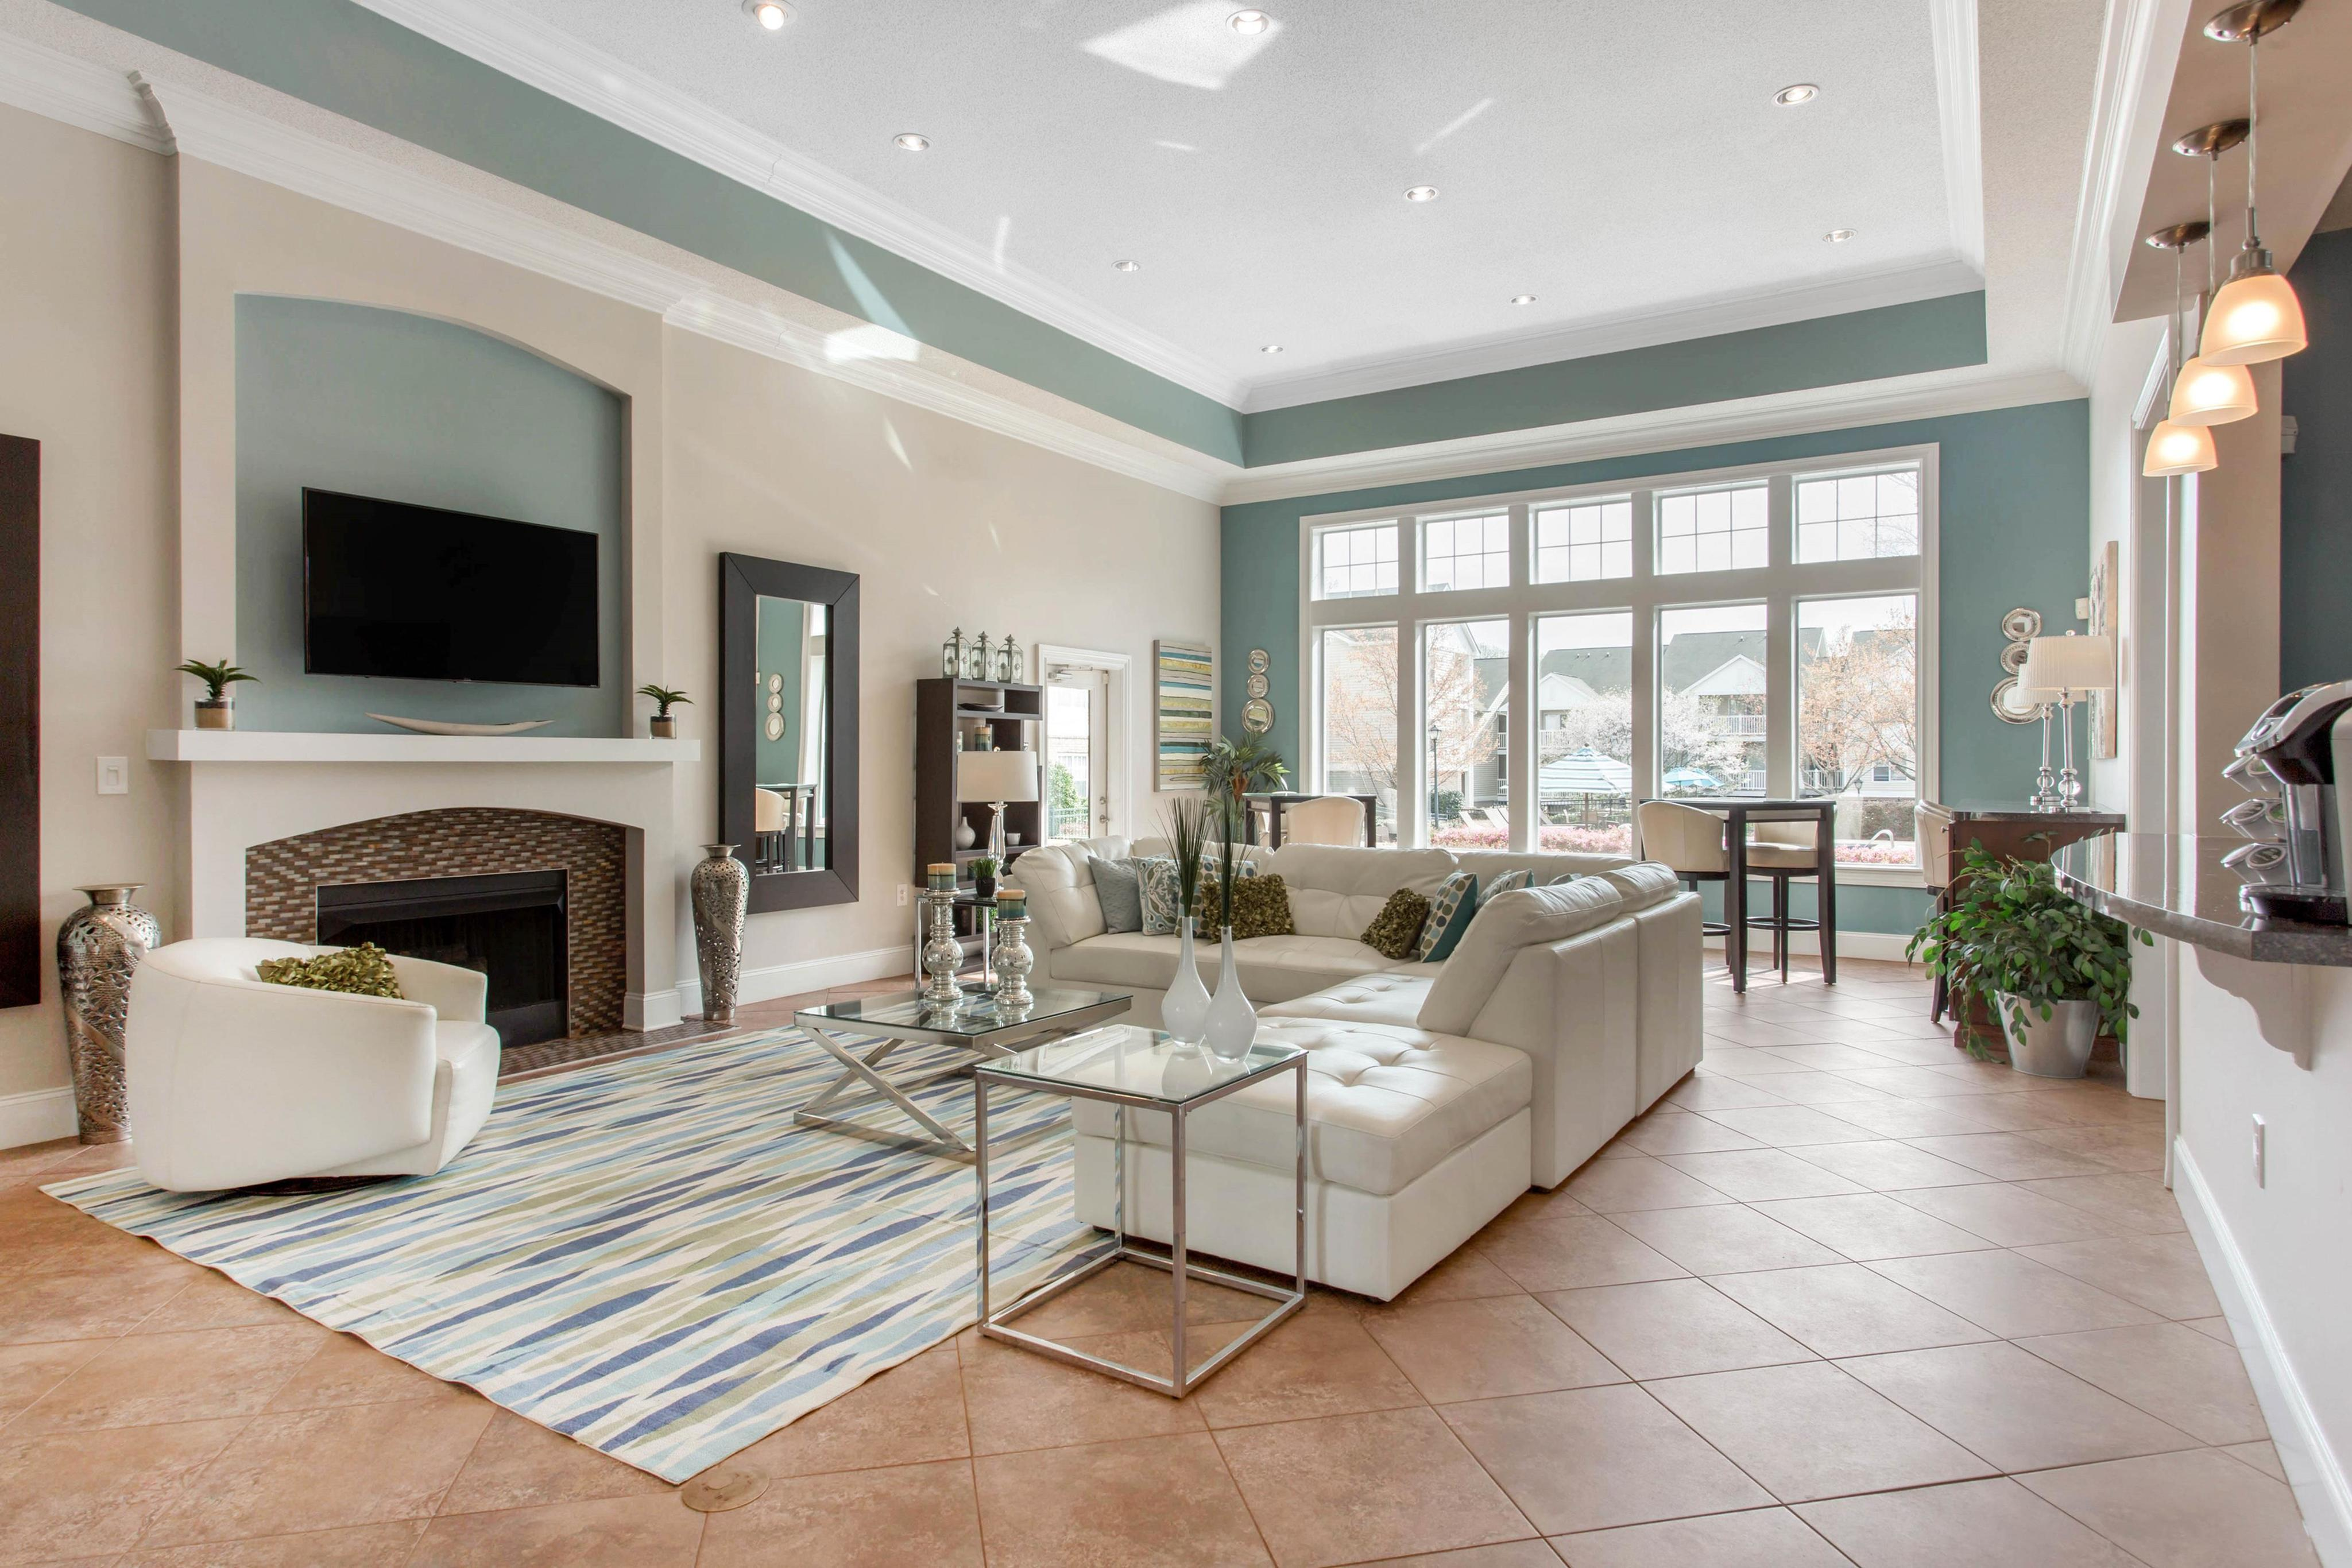 reserve one grand bedroom at in charlotte pavilions room for living nc apartments rent